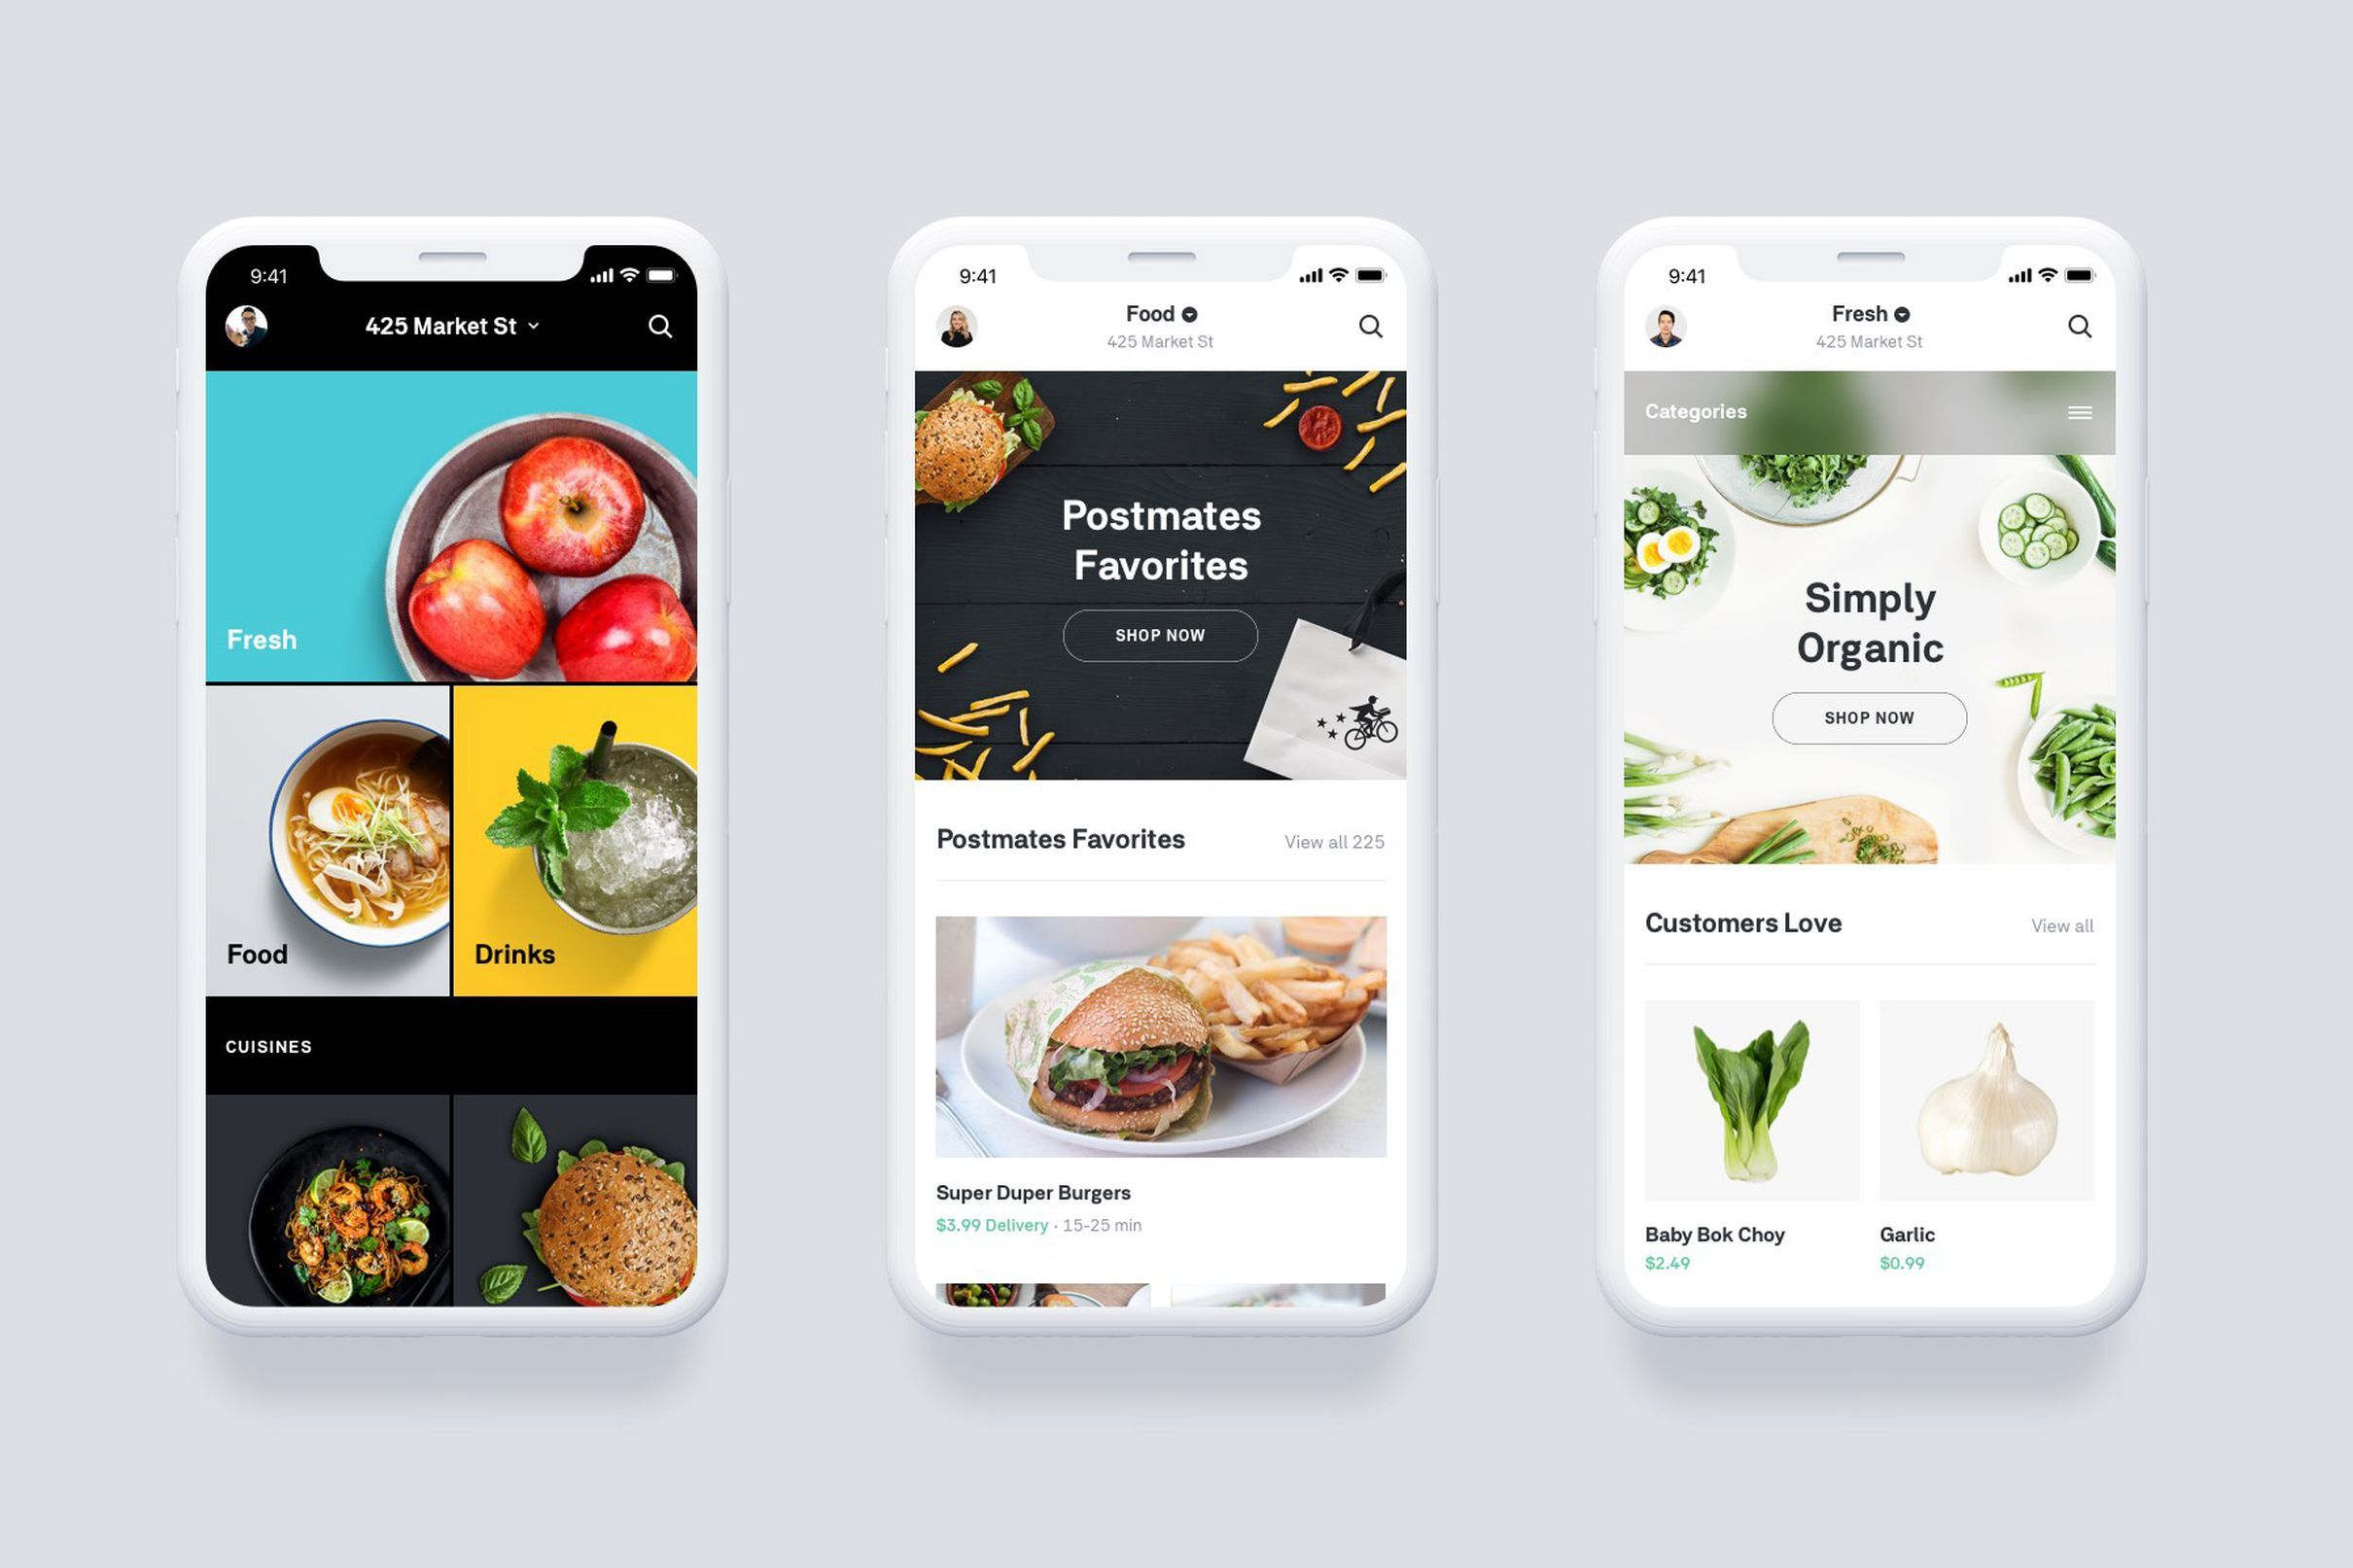 Postmates launches on-demand grocery delivery to take on